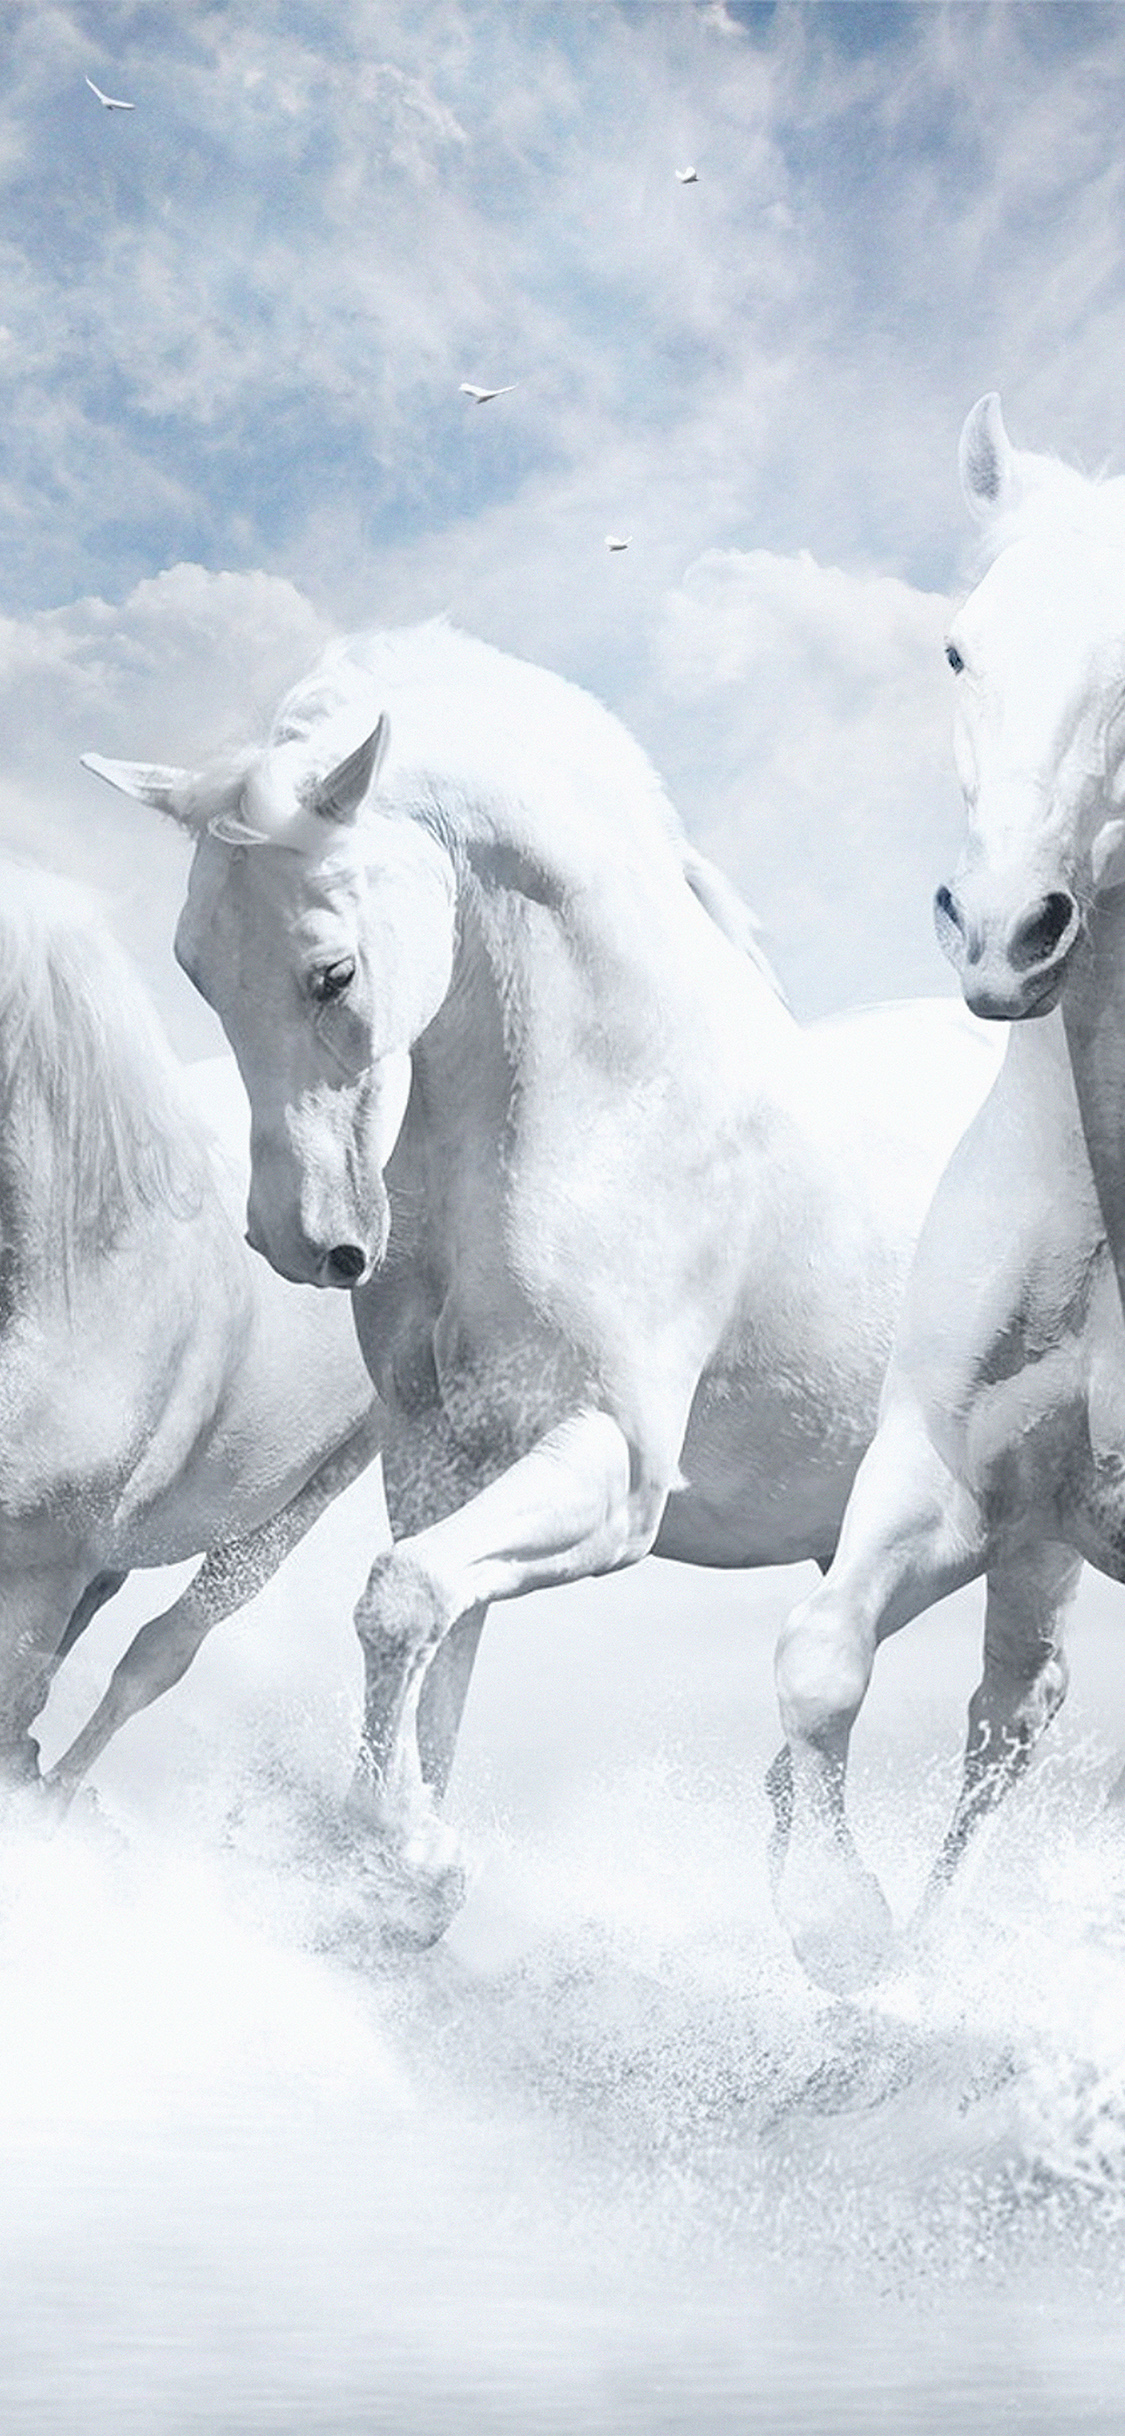 Papersco Iphone Wallpaper Au21 White Horses Water Sky